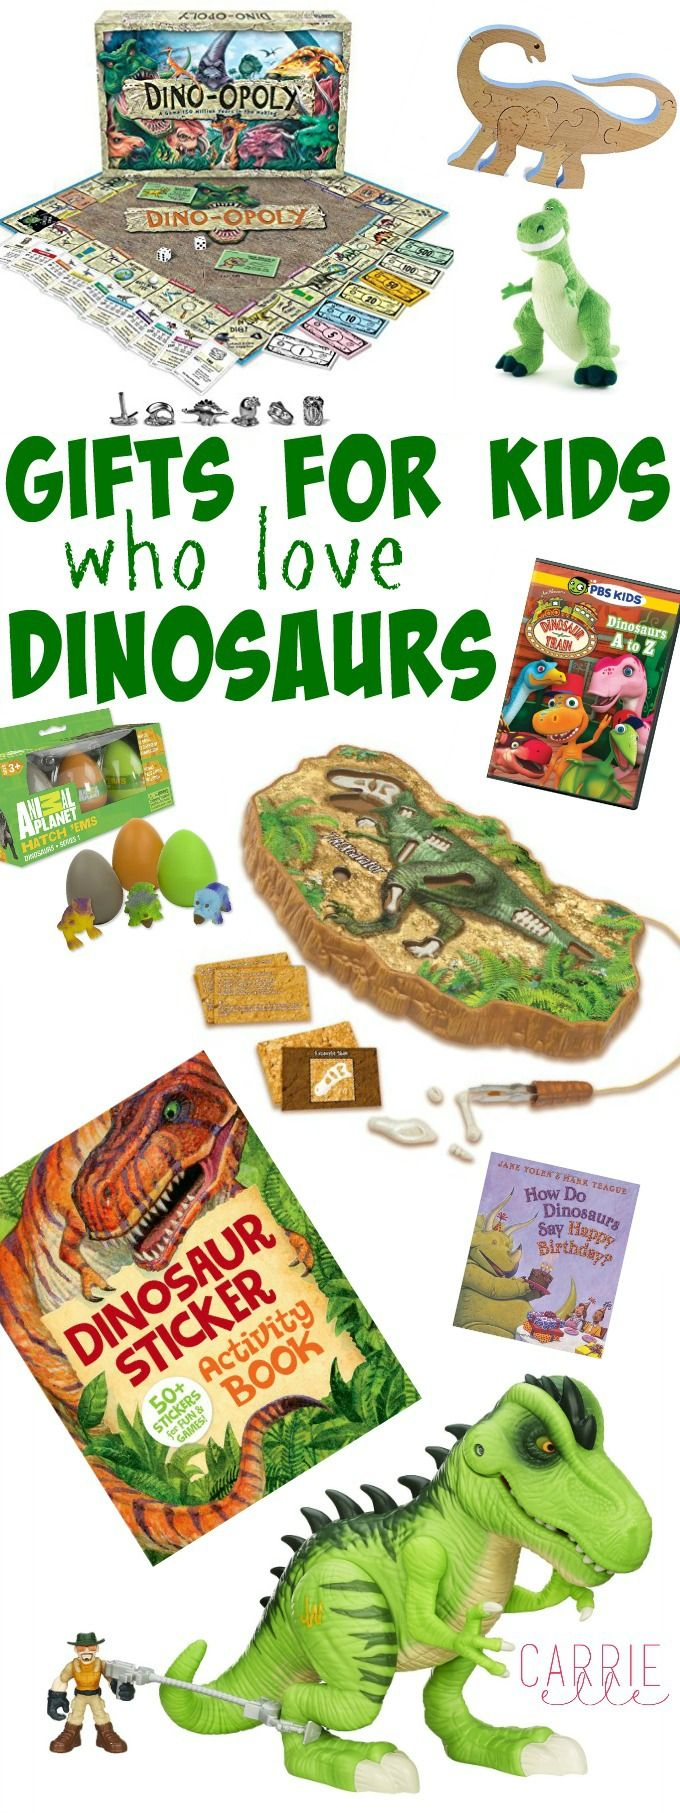 Gift Ideas for Little Dinosaur Lovers - all the cutest dinosaur gift ideas, from books to toys to shows!